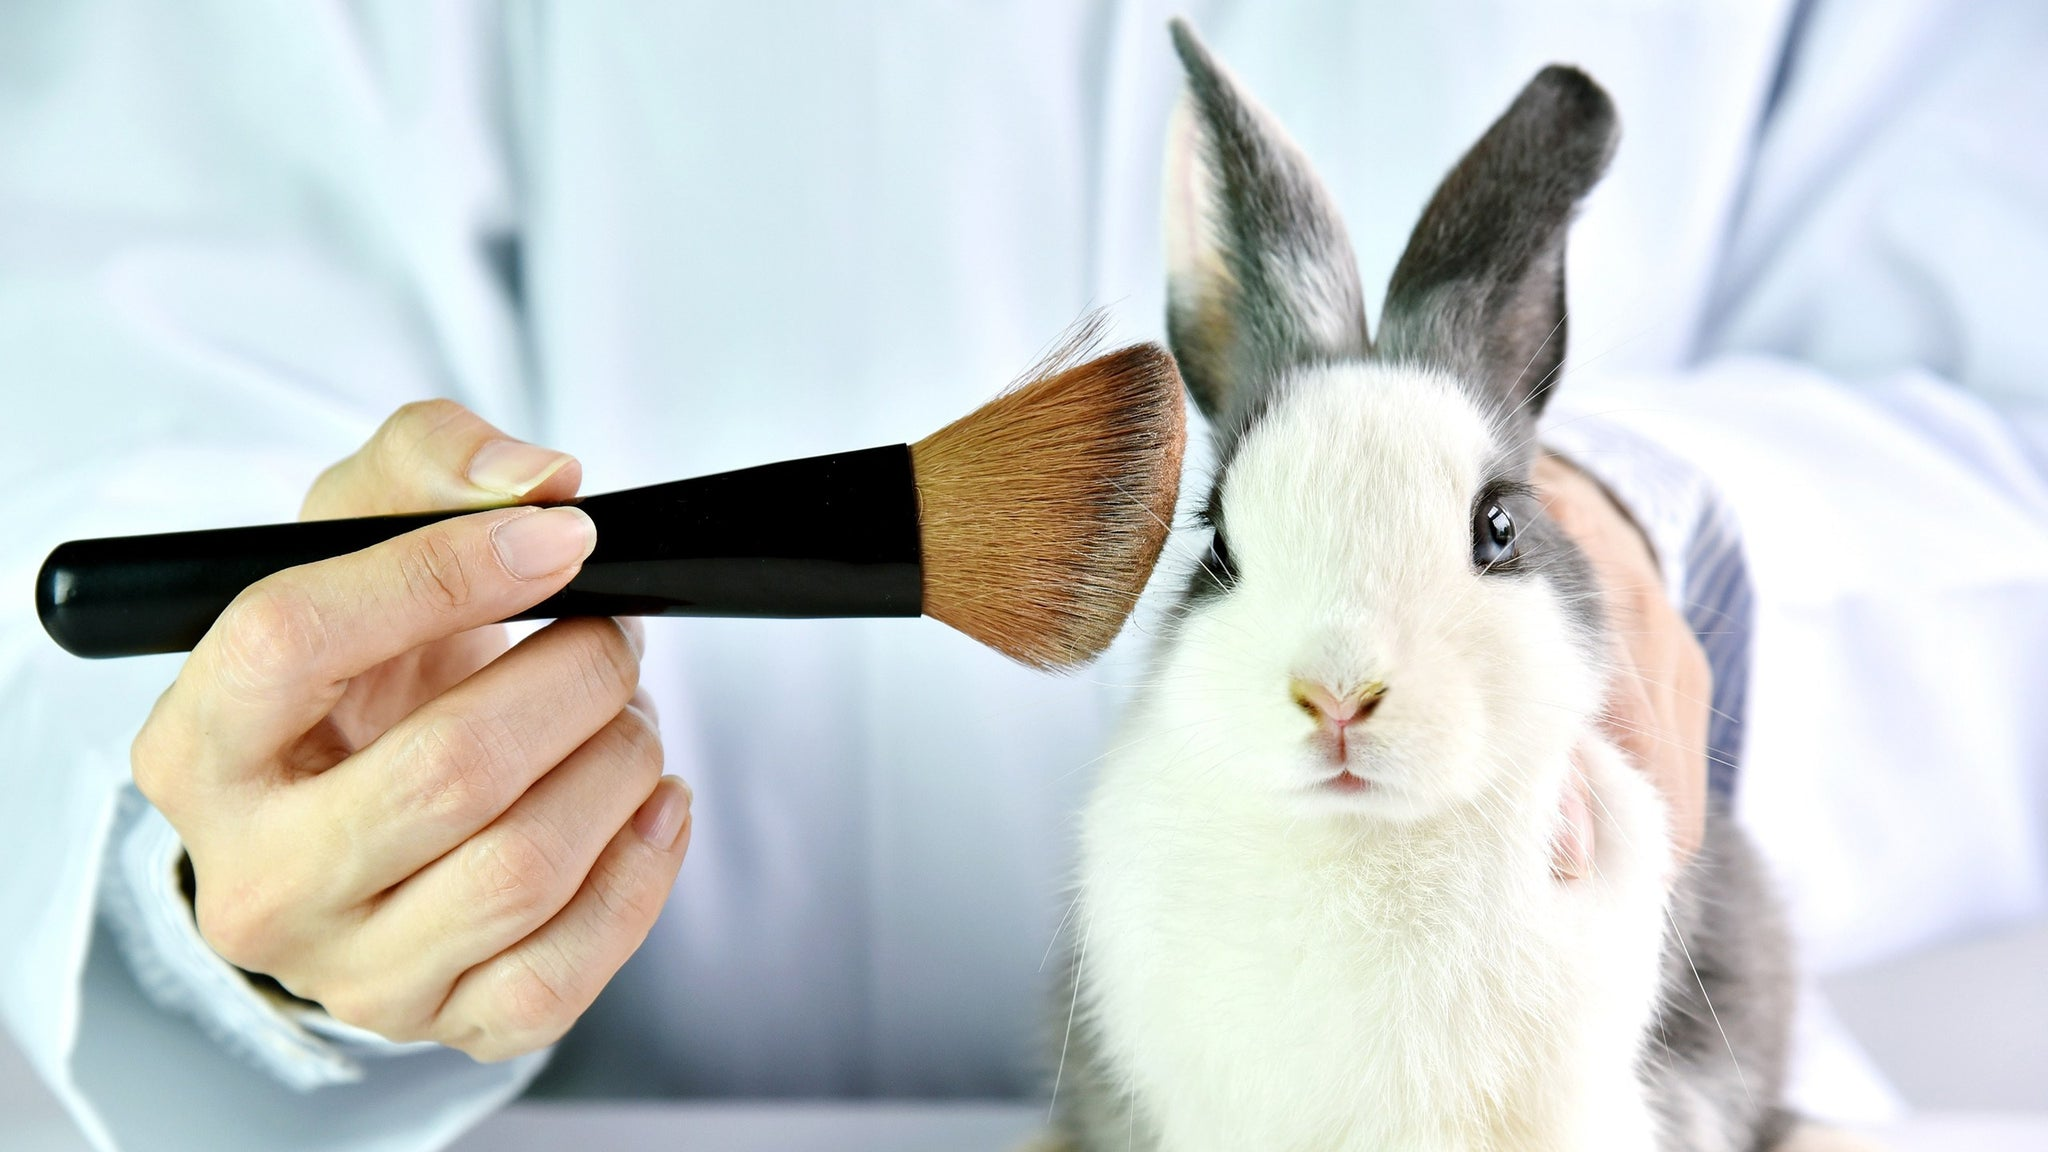 Start using animal cruelty-free products